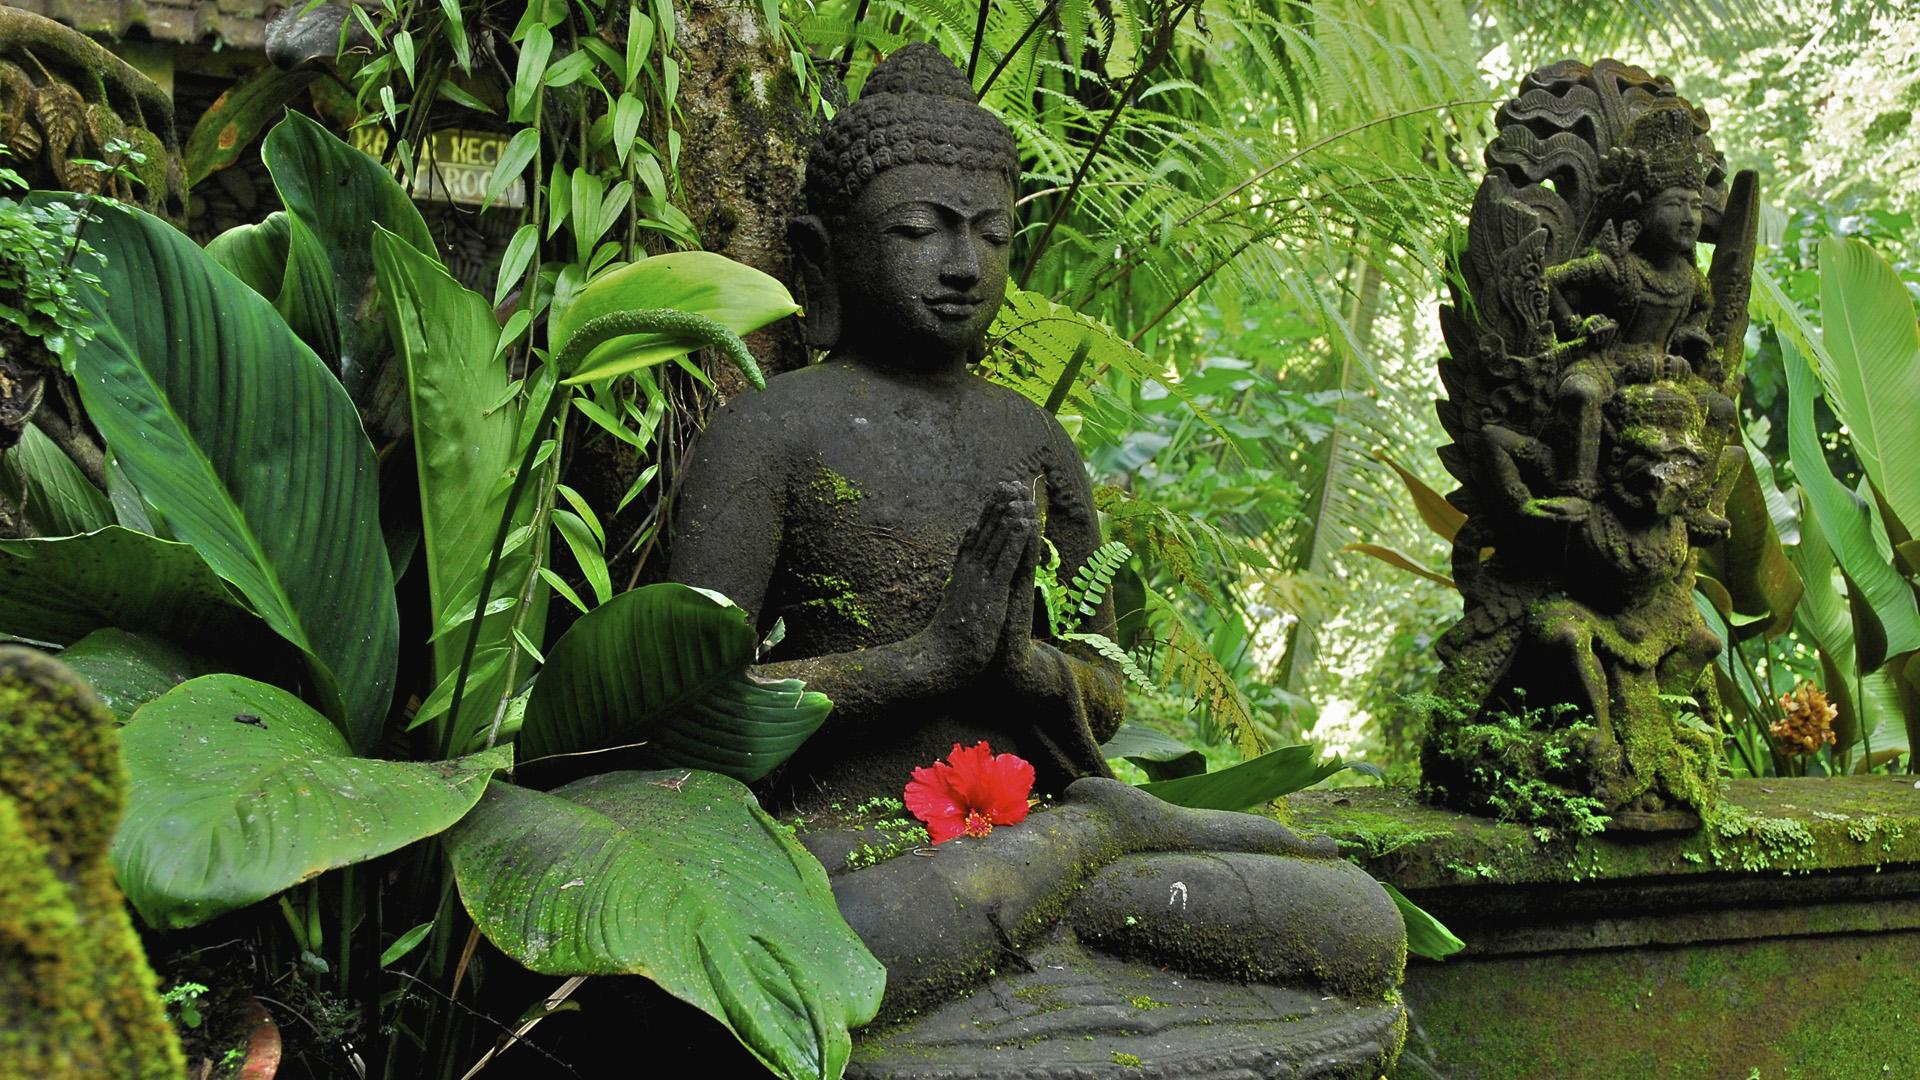 Lord buddha images for mobile 4